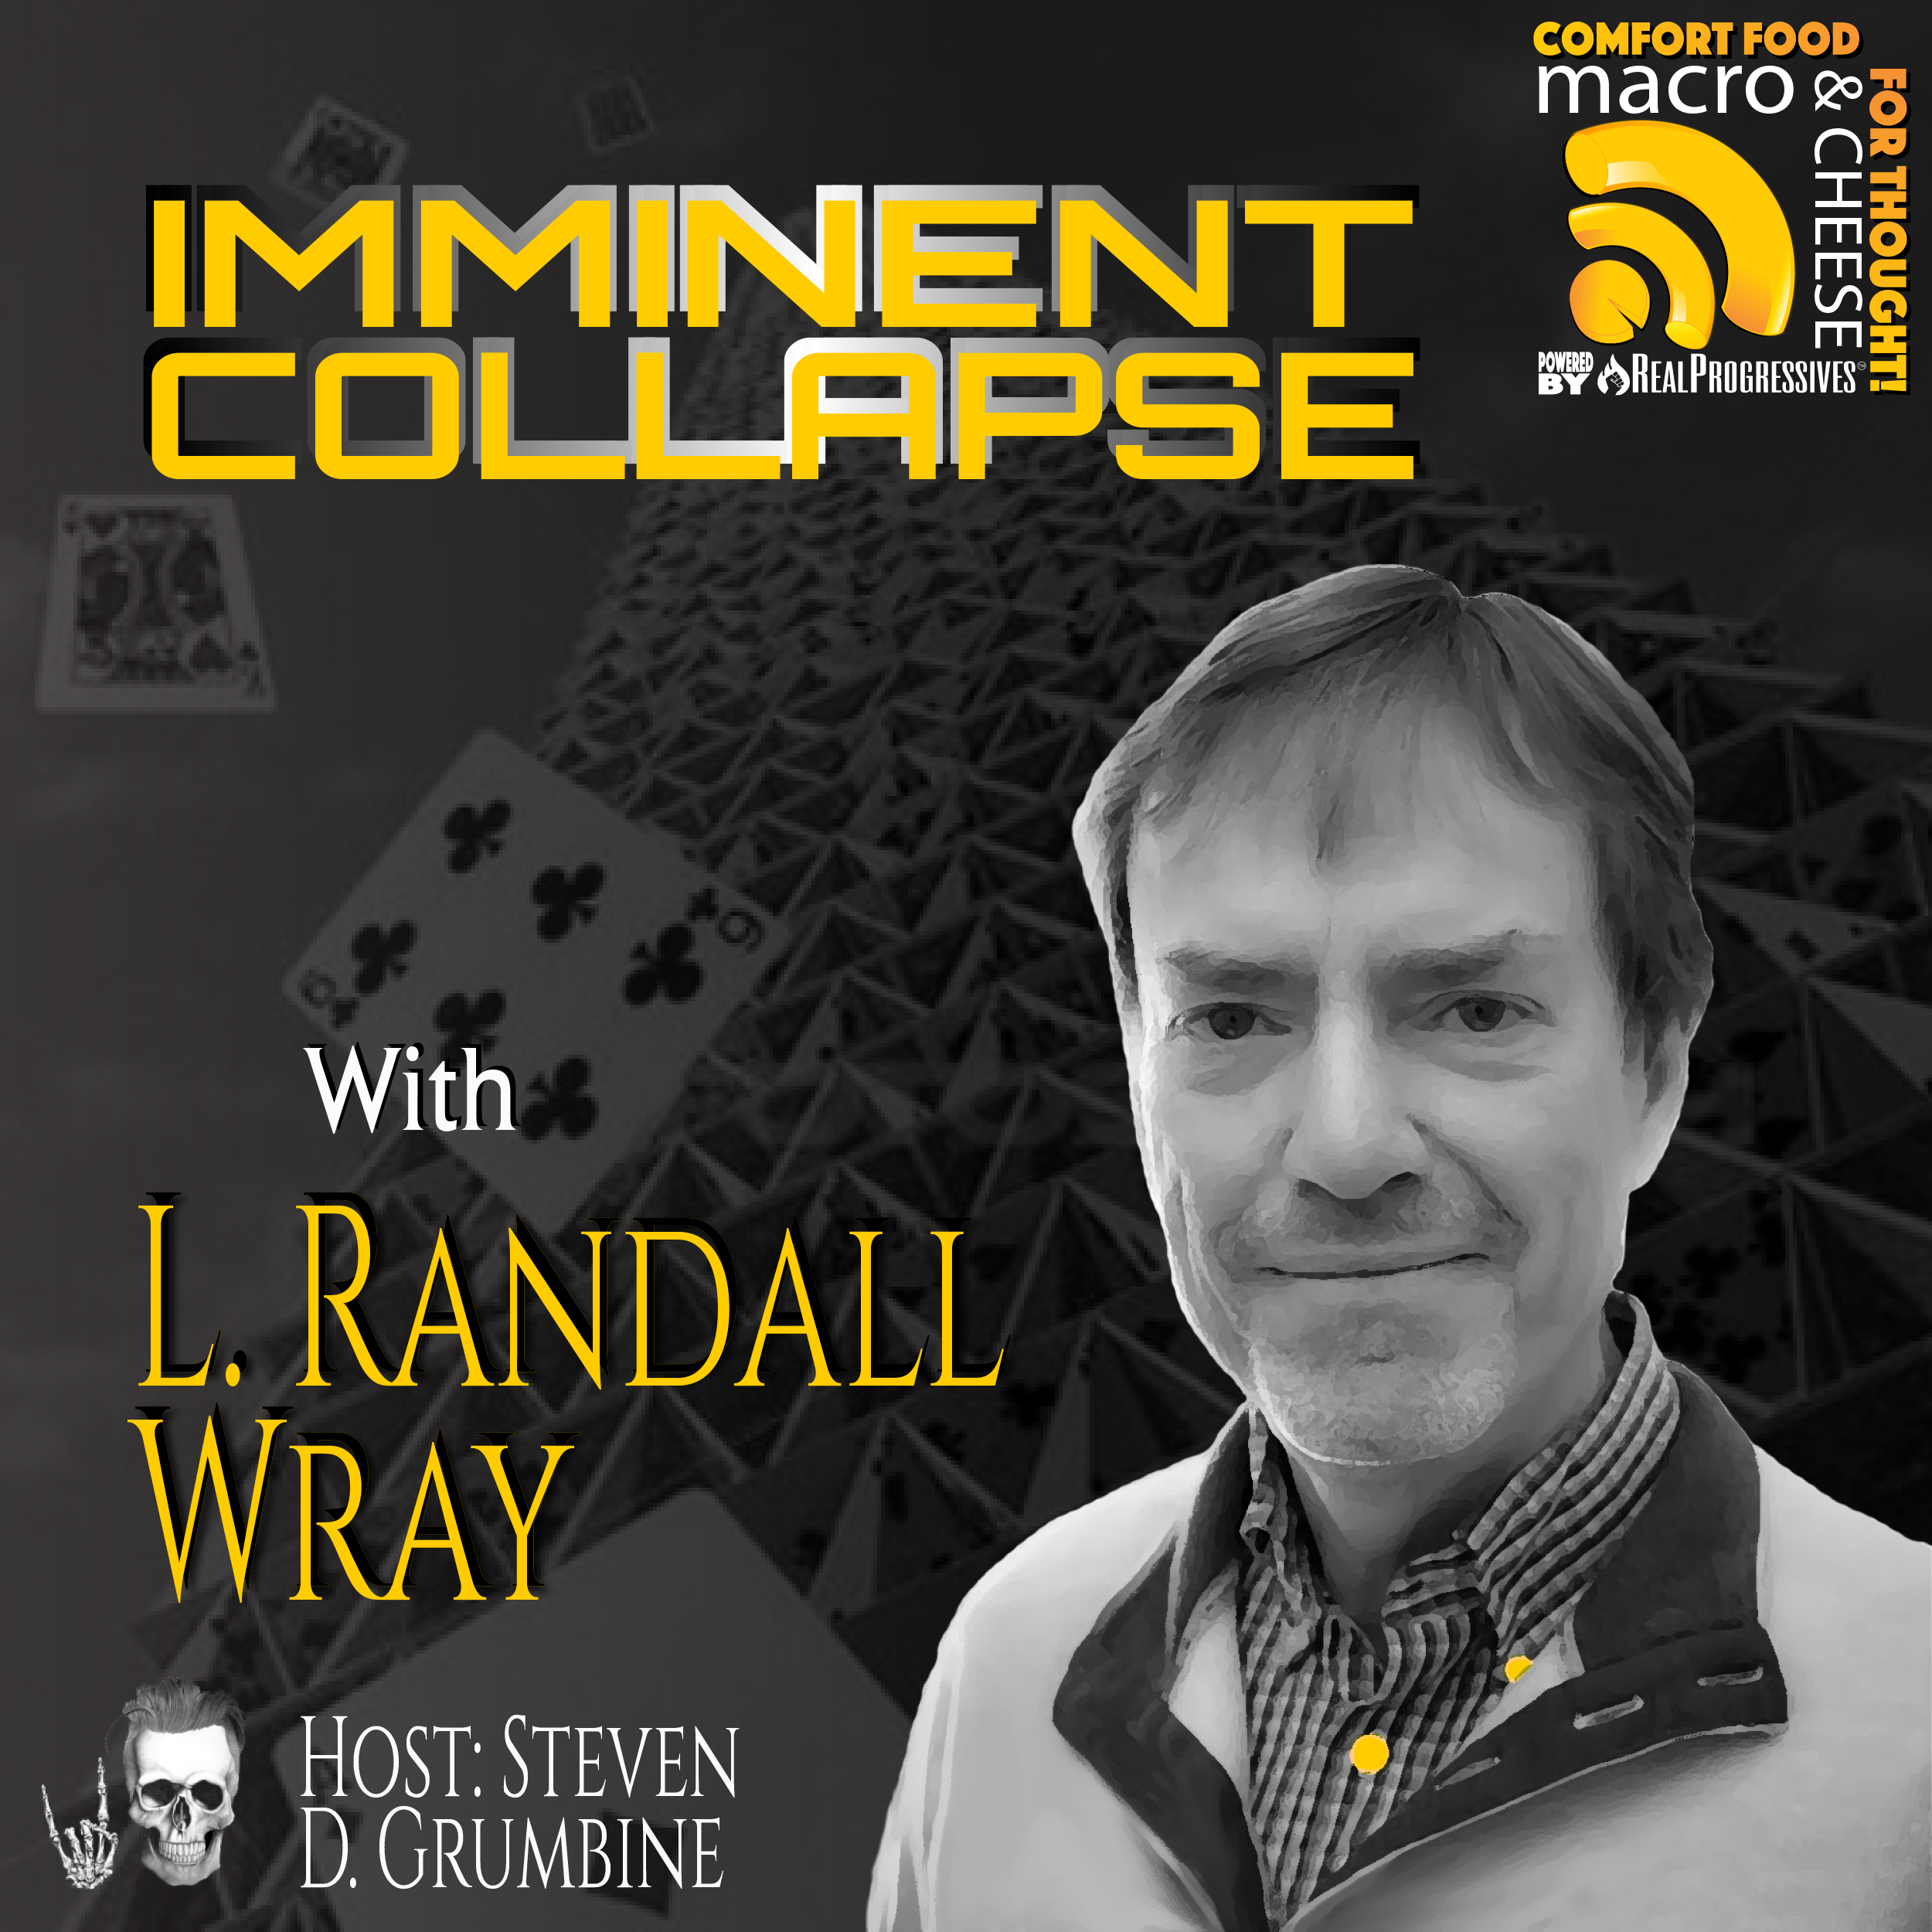 Imminent Collapse with L. Randall Wray